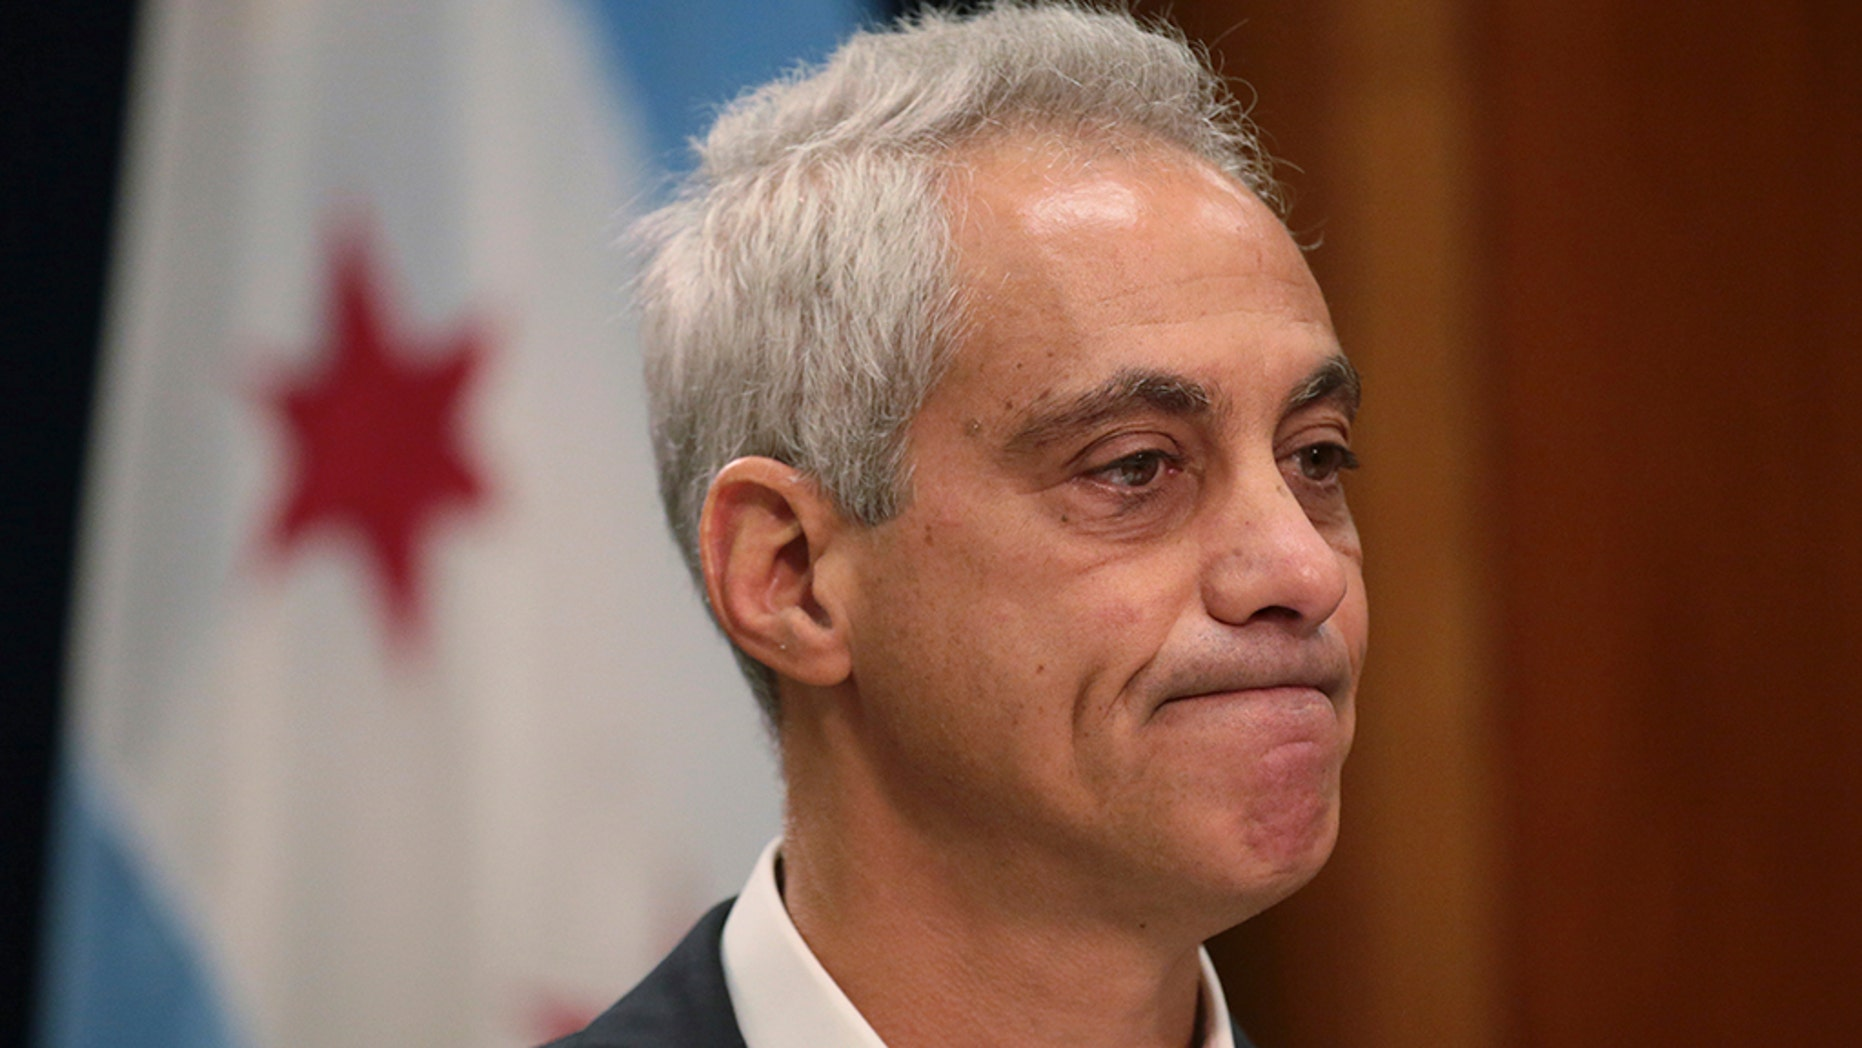 Chicago Mayor Rahm Emanuel announced Tuesday, Sept. 4, 2018, he would not seek a third term in office at a press conference on the fifth floor at City Hall in Chicago. (Stacey Wescott/Chicago Tribune via AP)